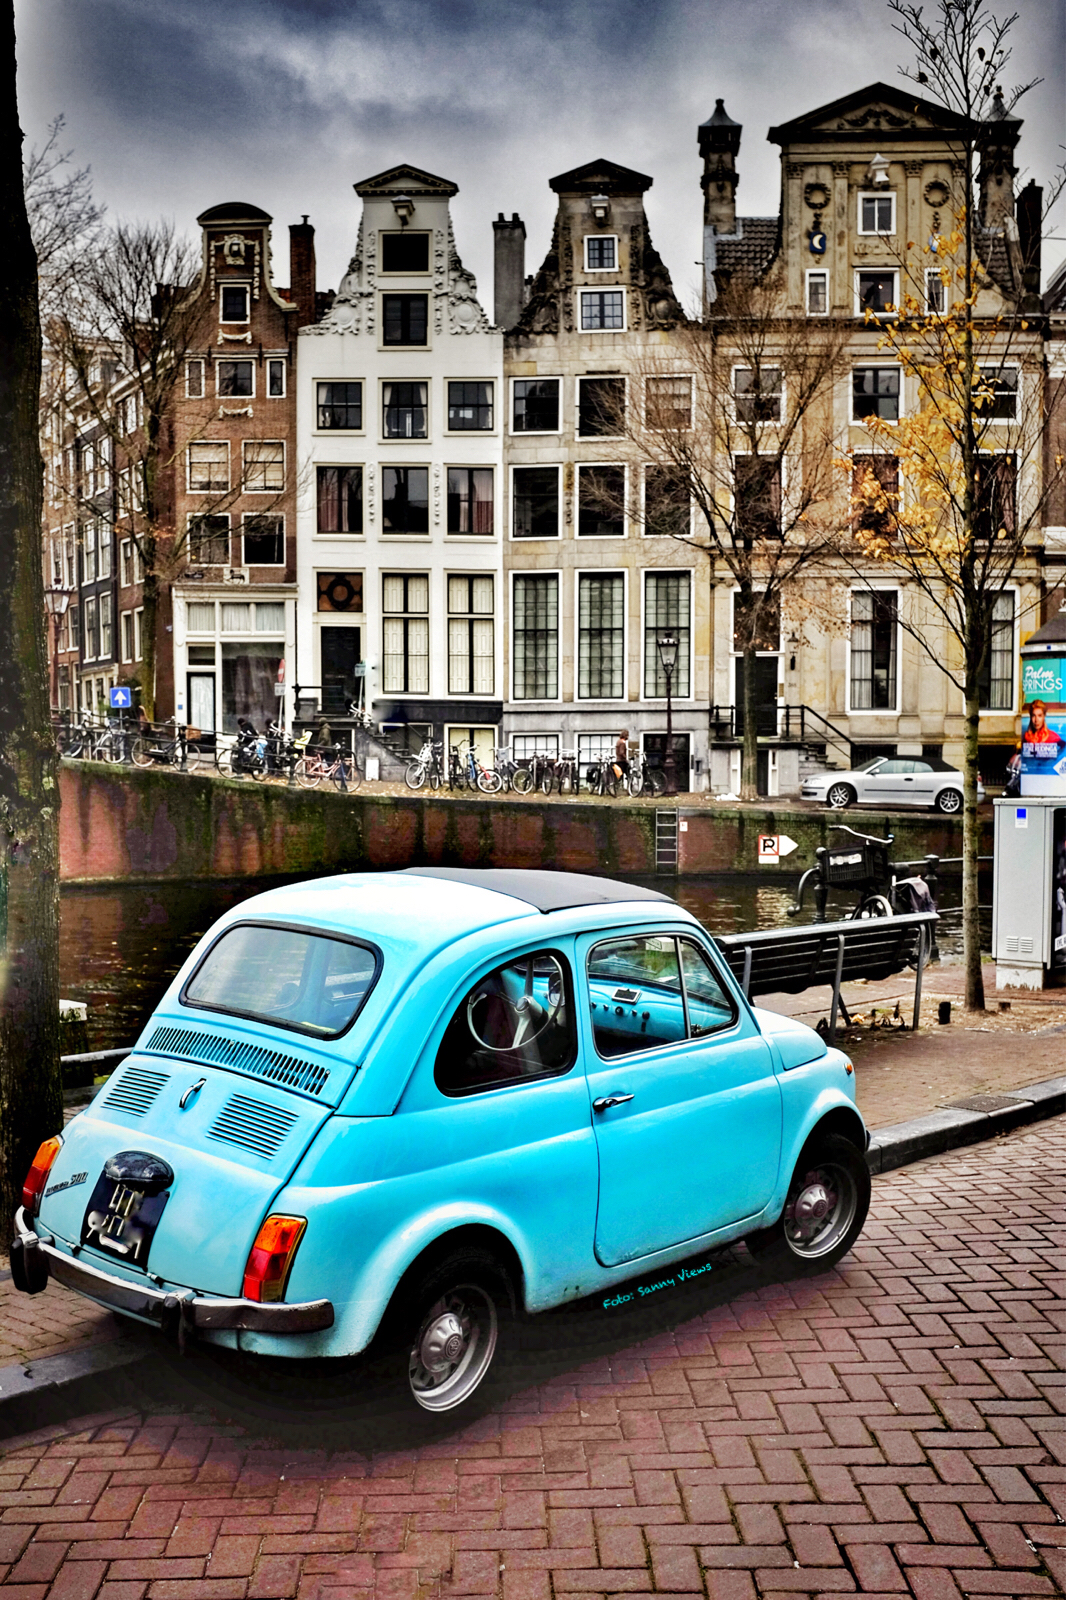 Little Blue Car in Amsterdam